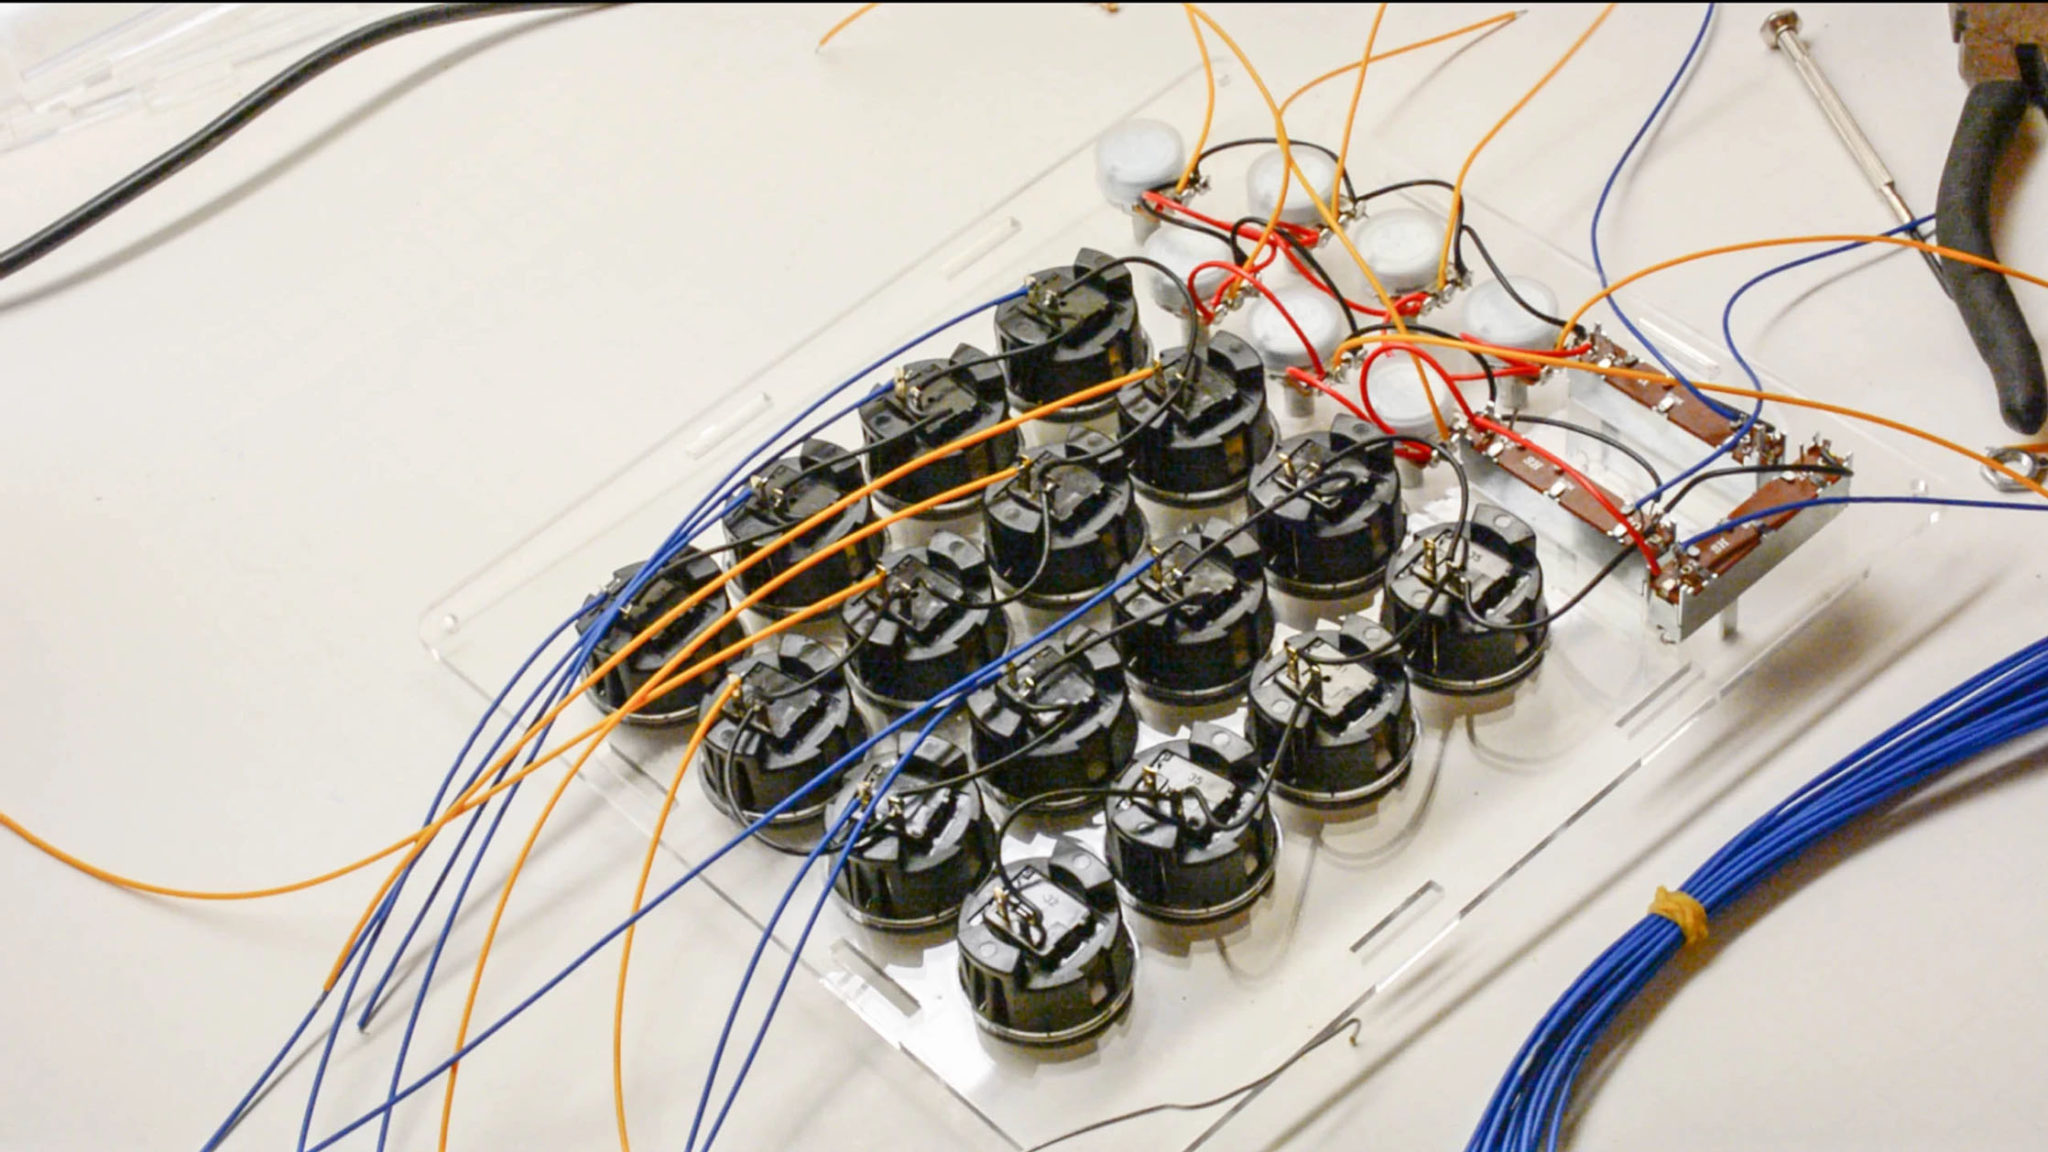 03-soldering-the-wires